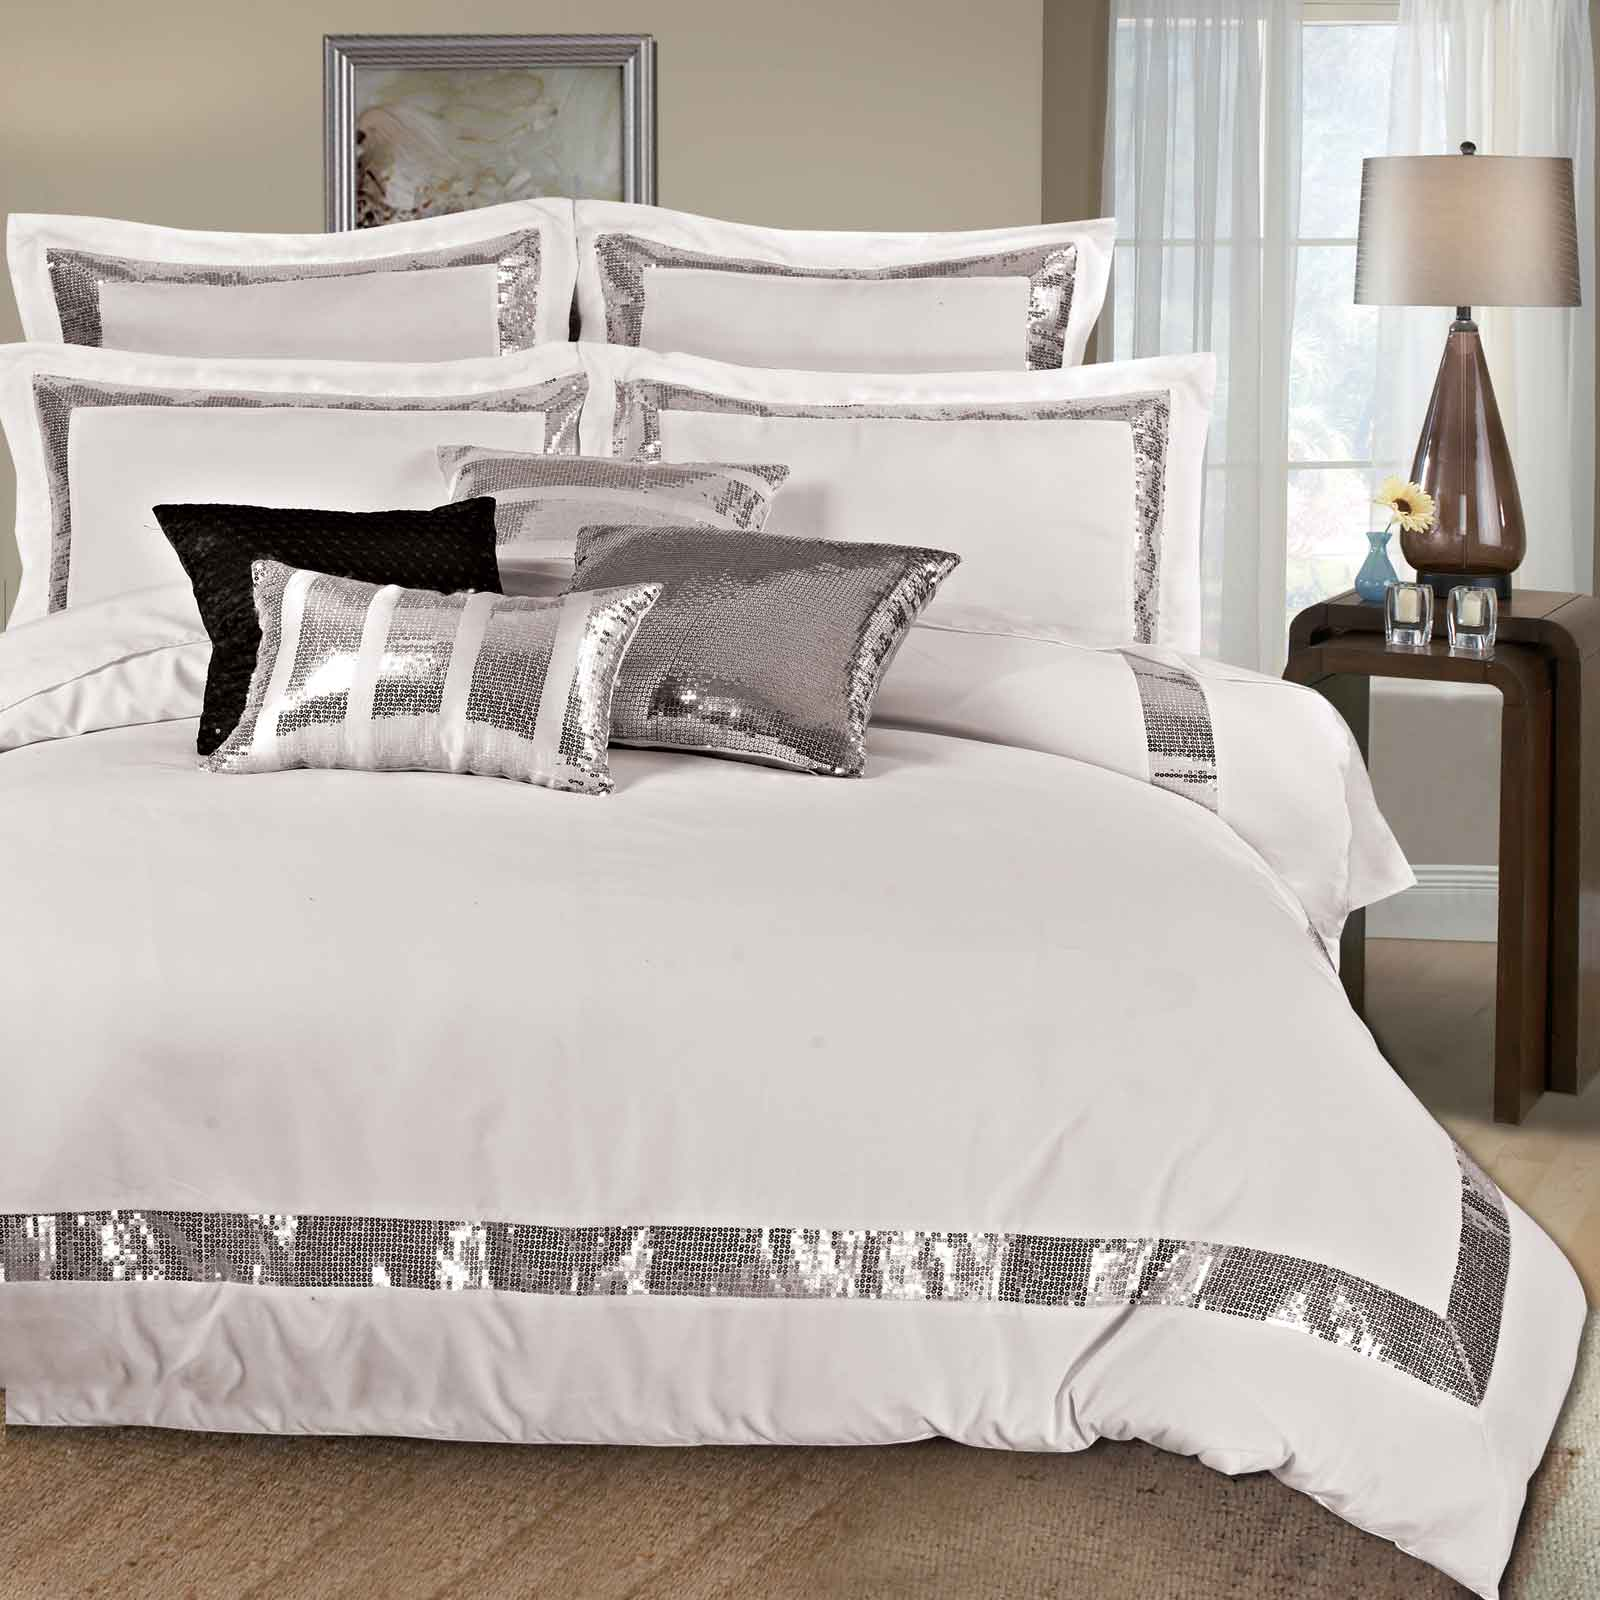 Sequins Queen  King Size Duvet  Quilt Cover Set 3pcs Bed